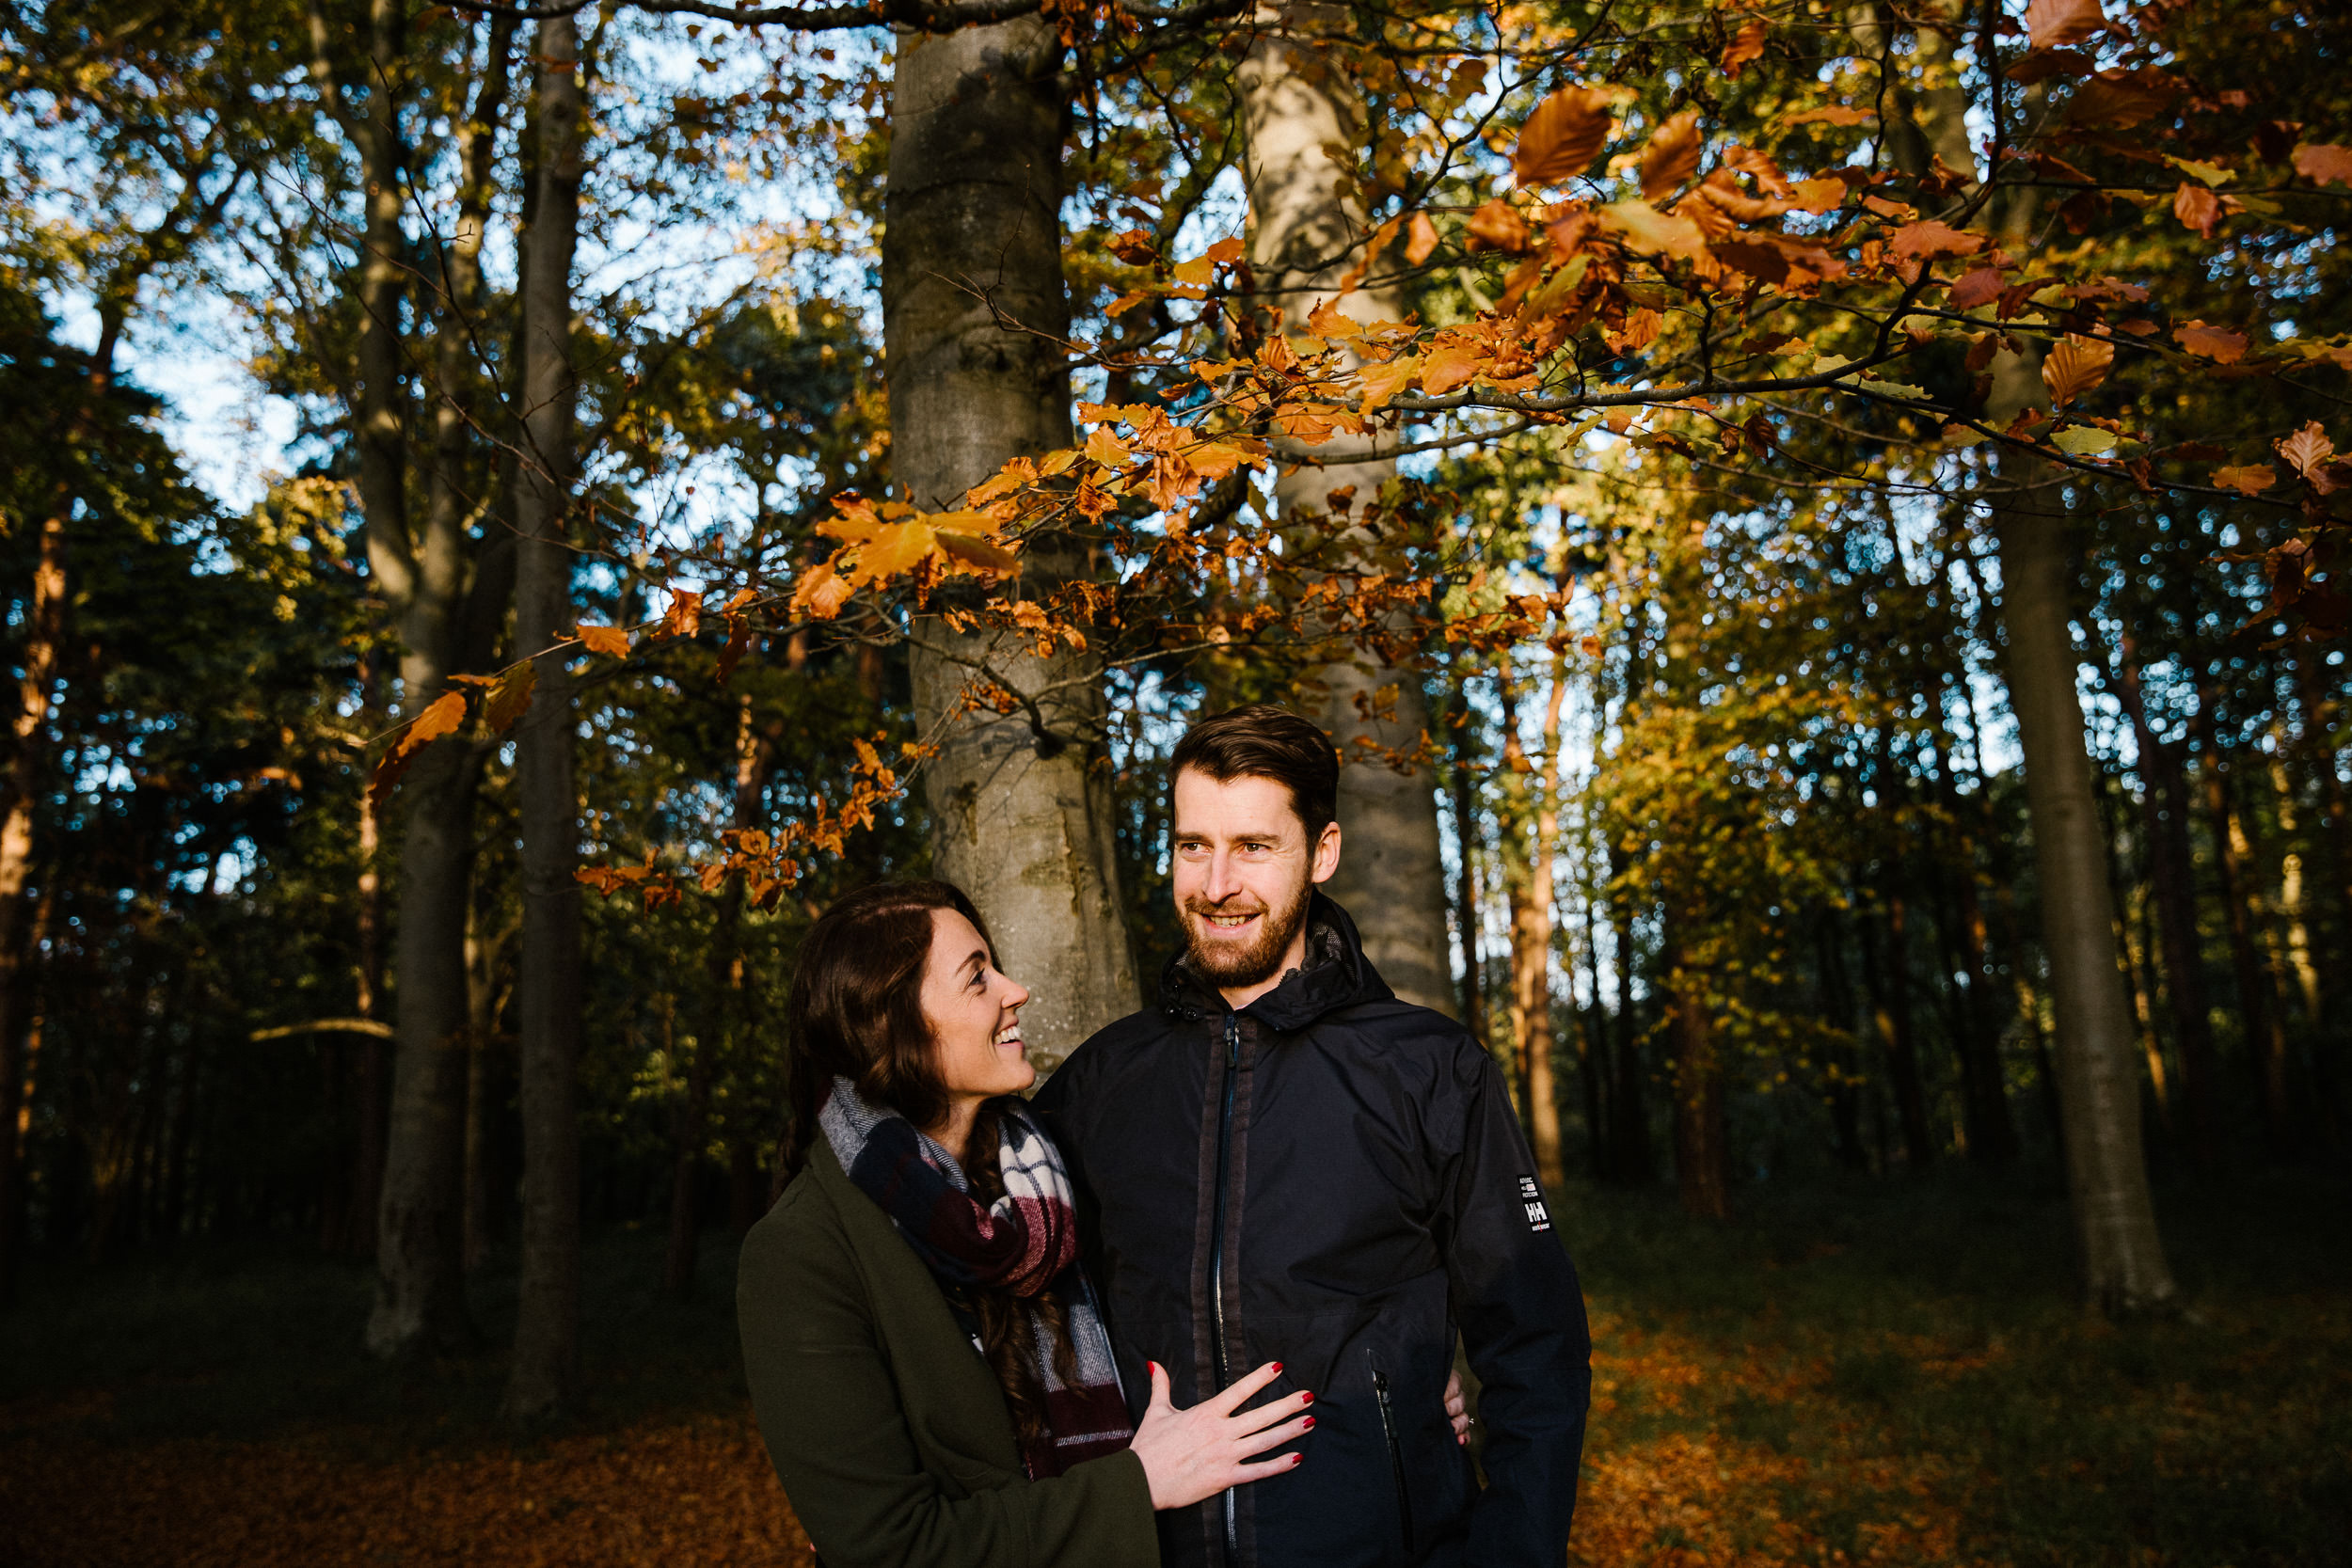 clairebyrnephotography-fun-wedding-photographer-ireland-creative-engagment-park-3.jpg